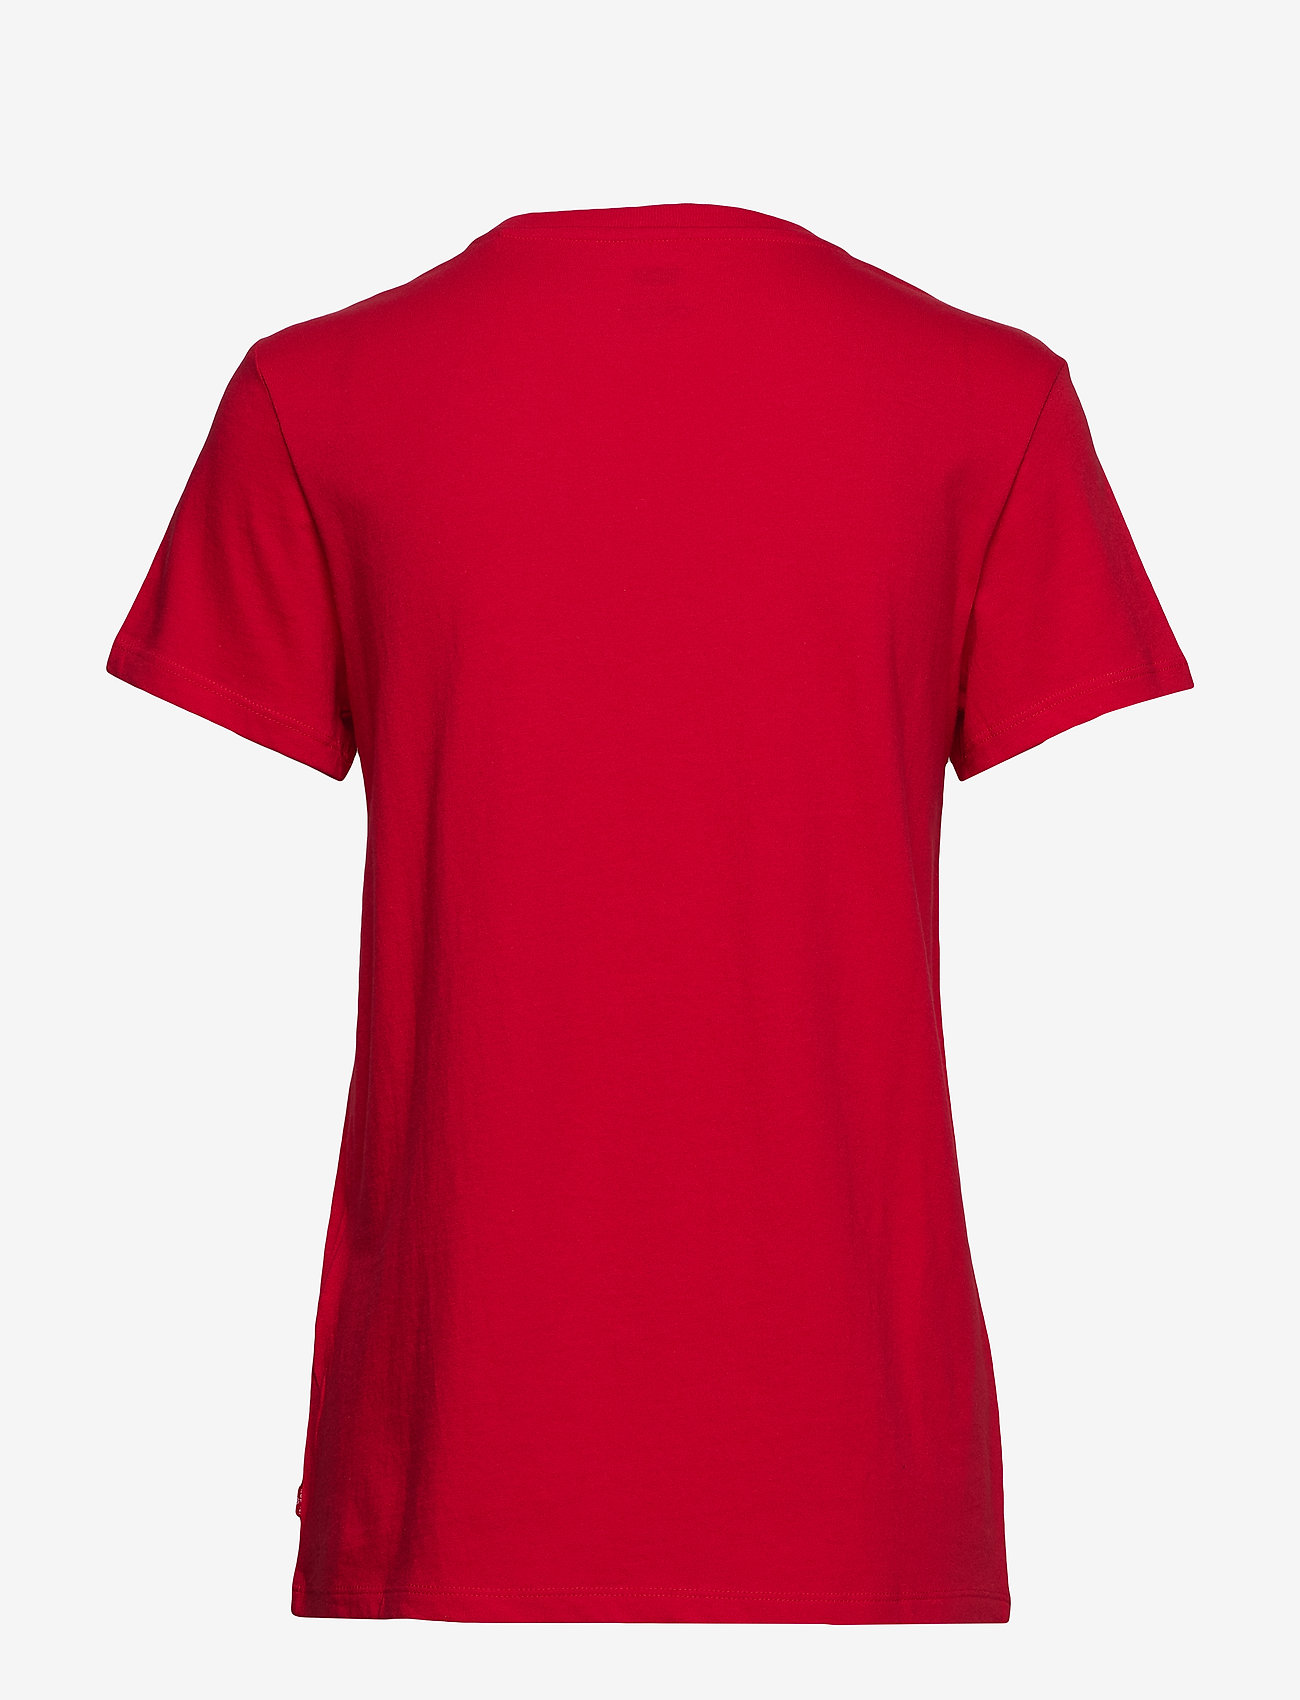 LEVI´S Women - THE PERFECT TEE HSMK OUTLINE B - reds